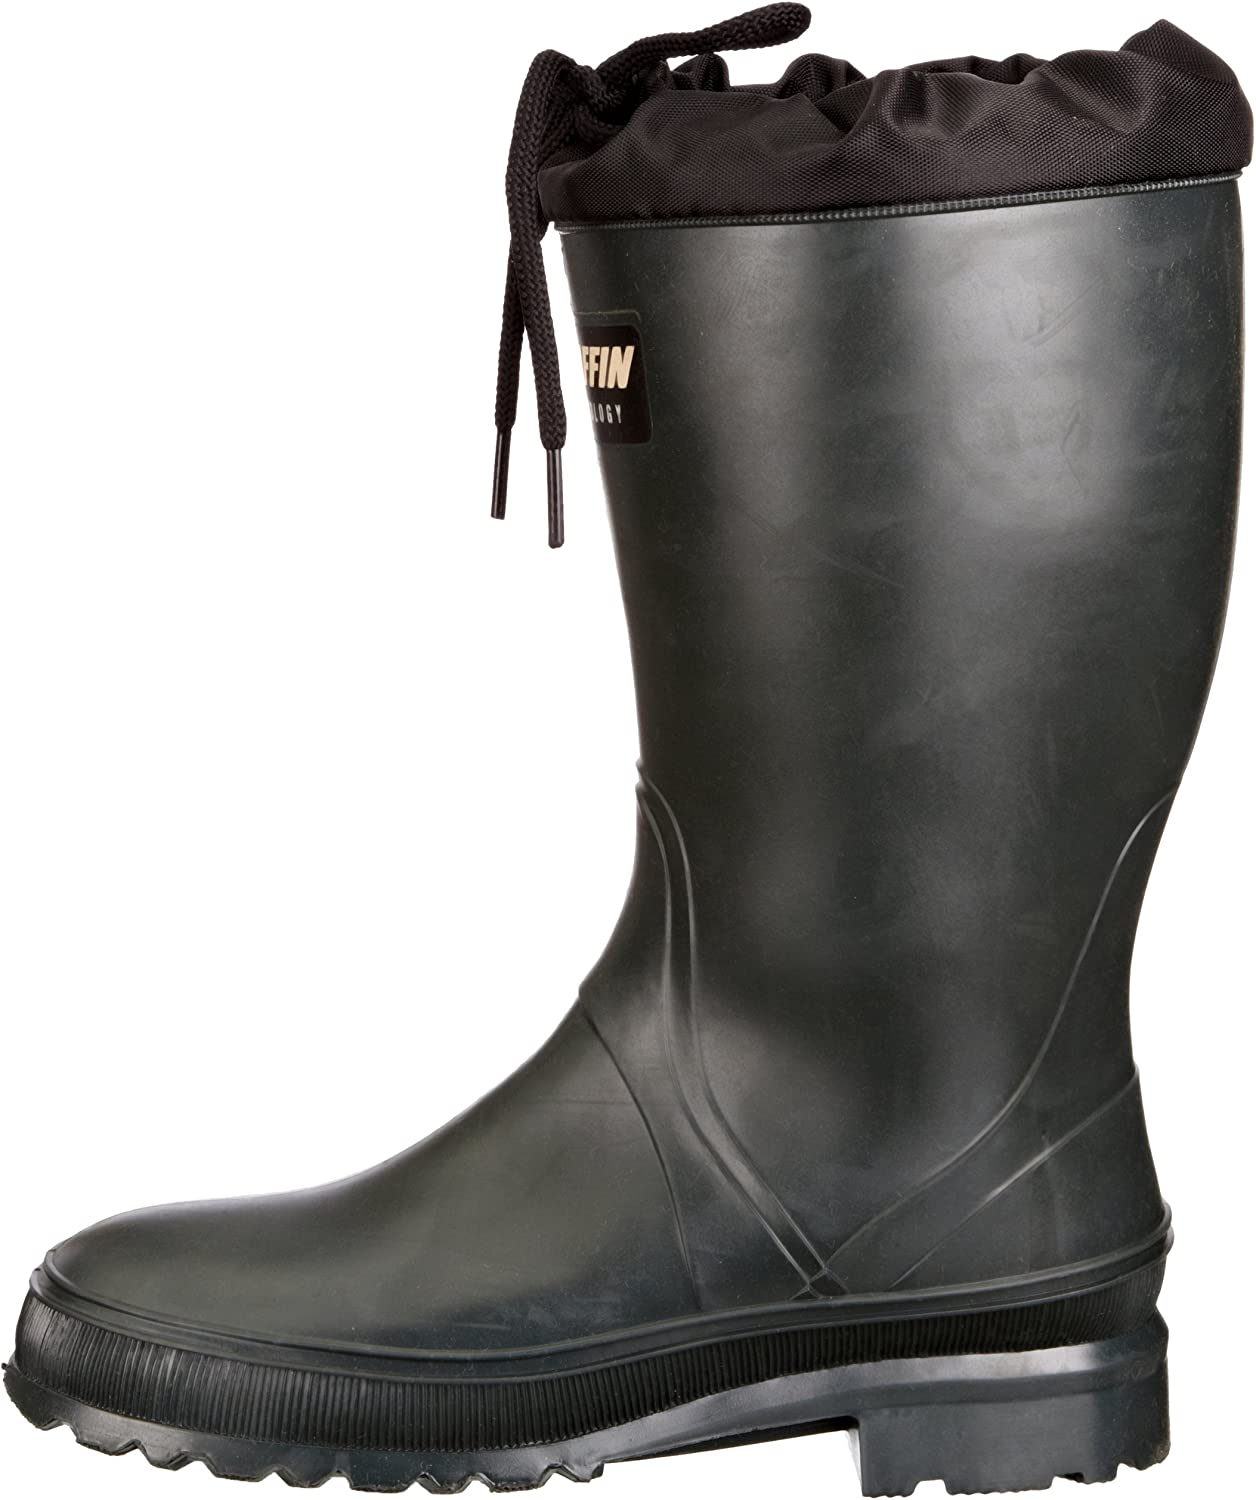 Baffin Womens Storm Canadian Made Industrial Rubber Boot